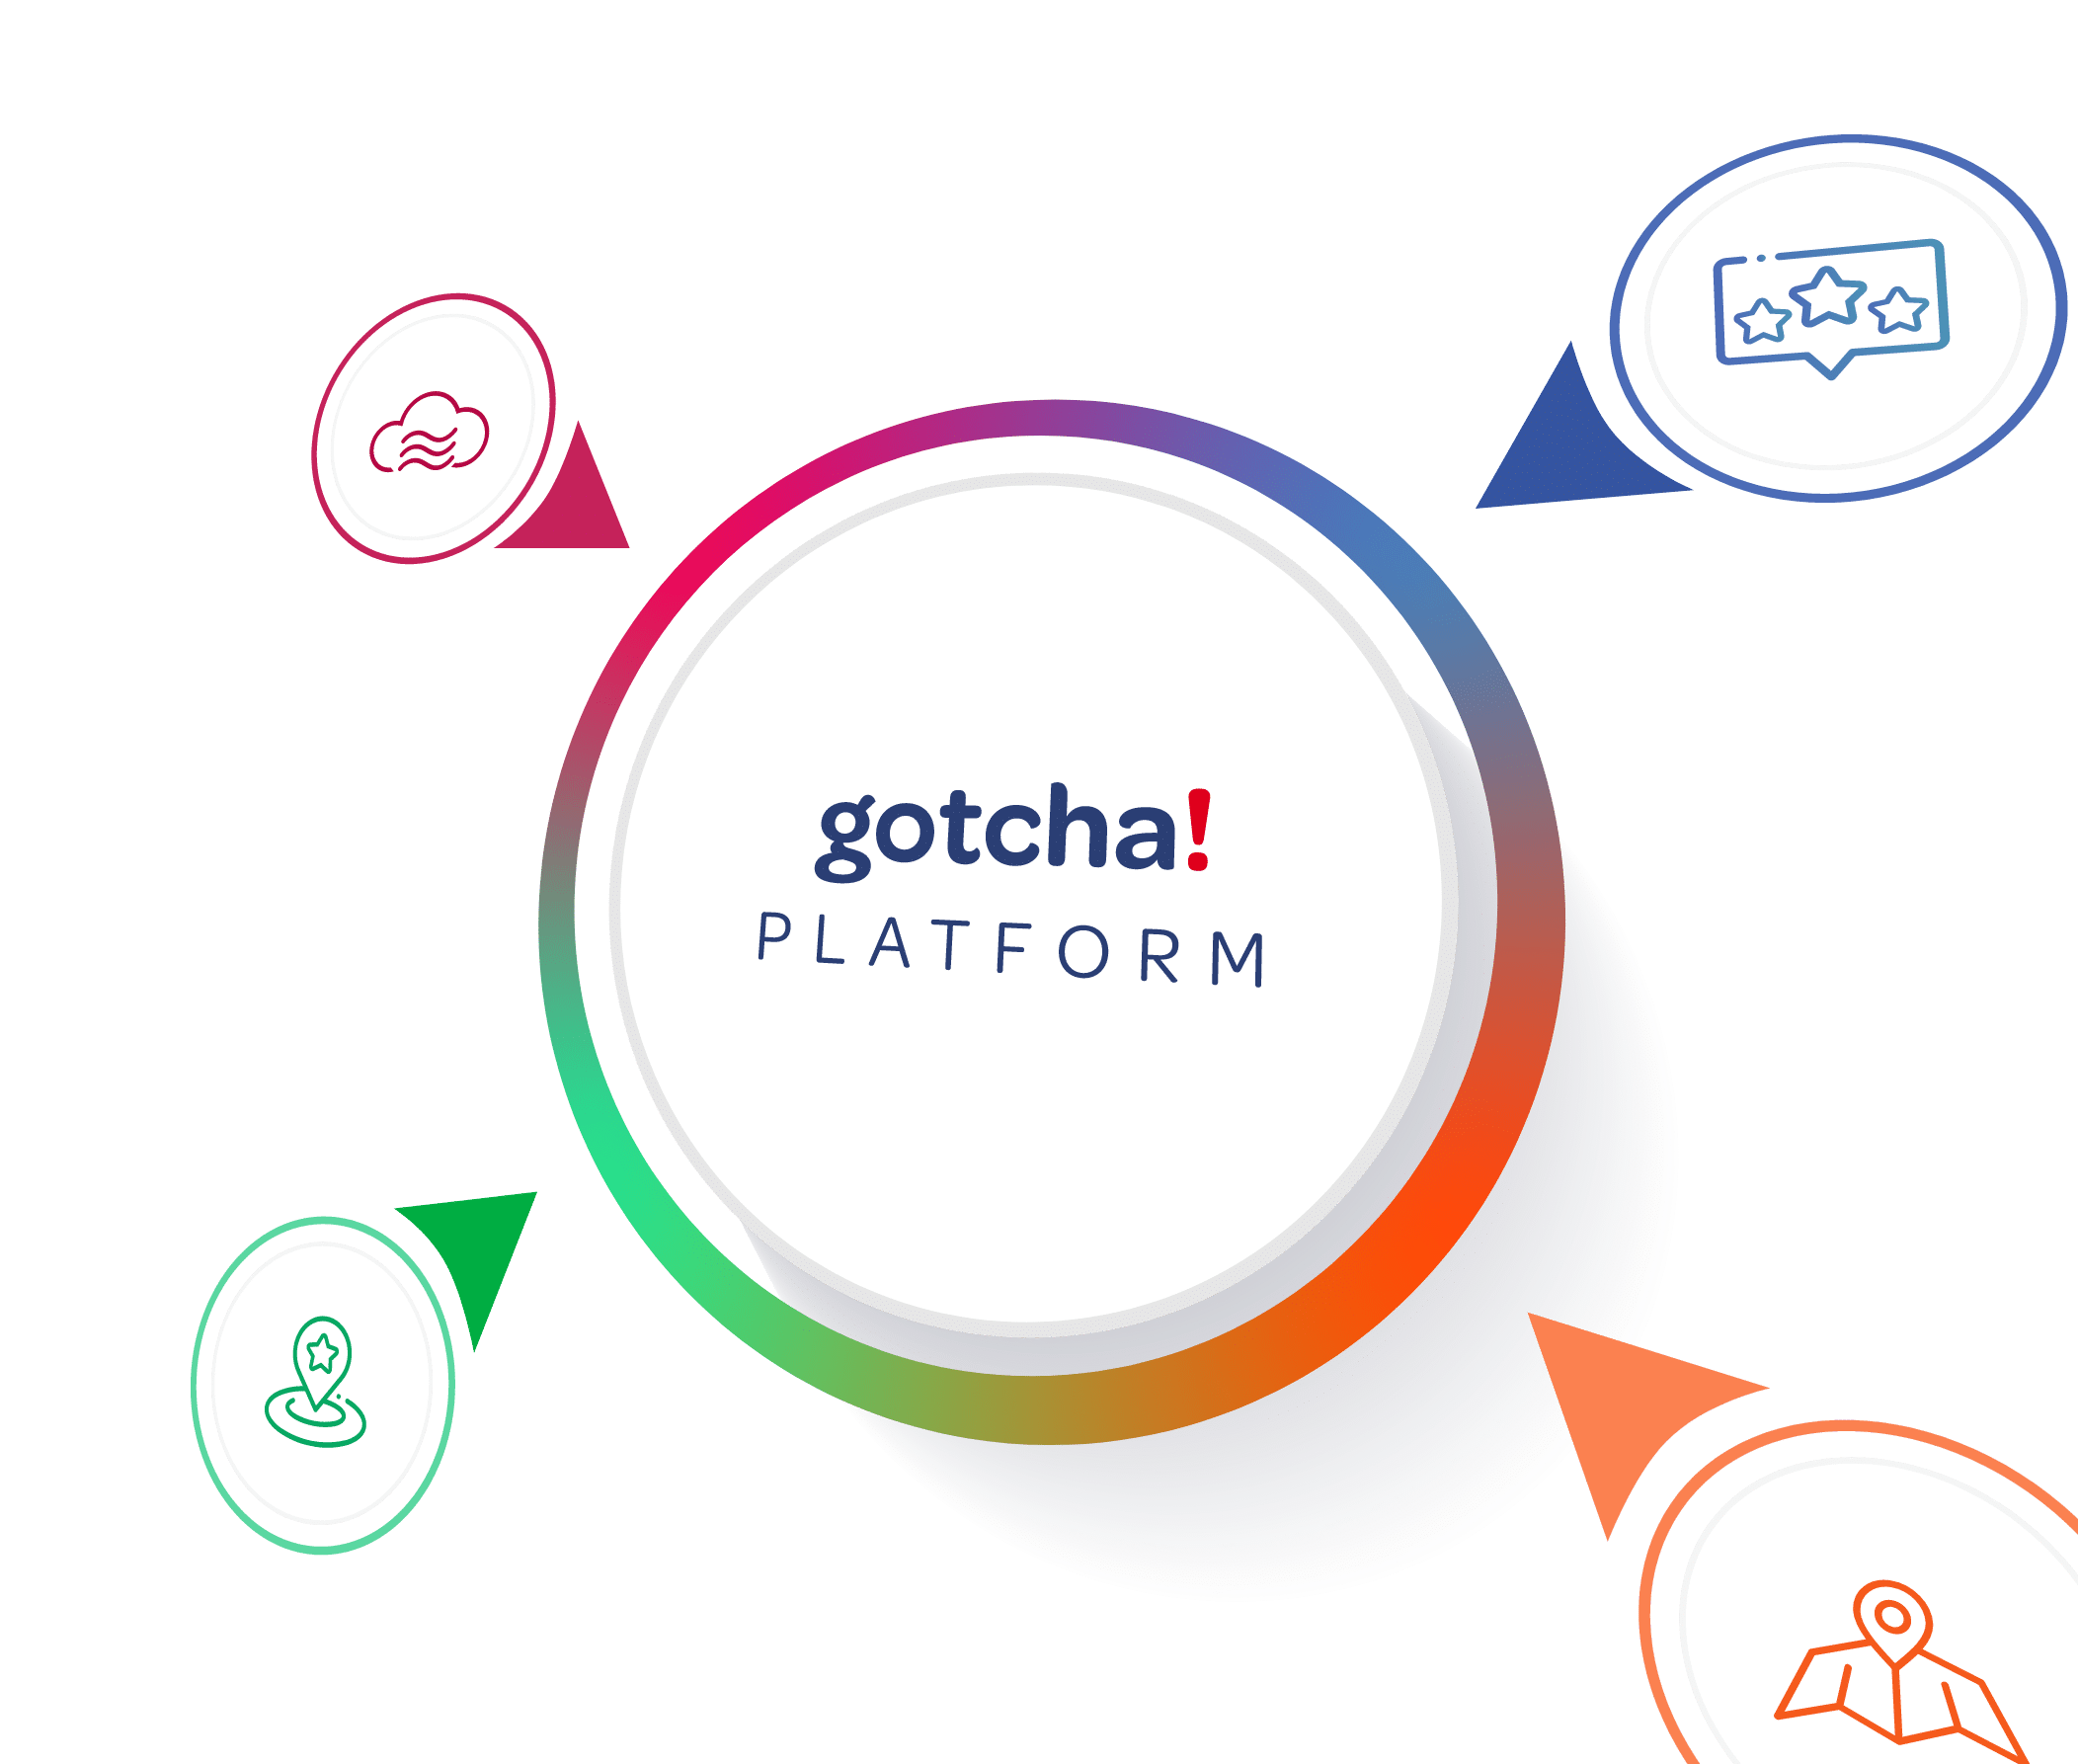 gotcha-apps-and-services@2x